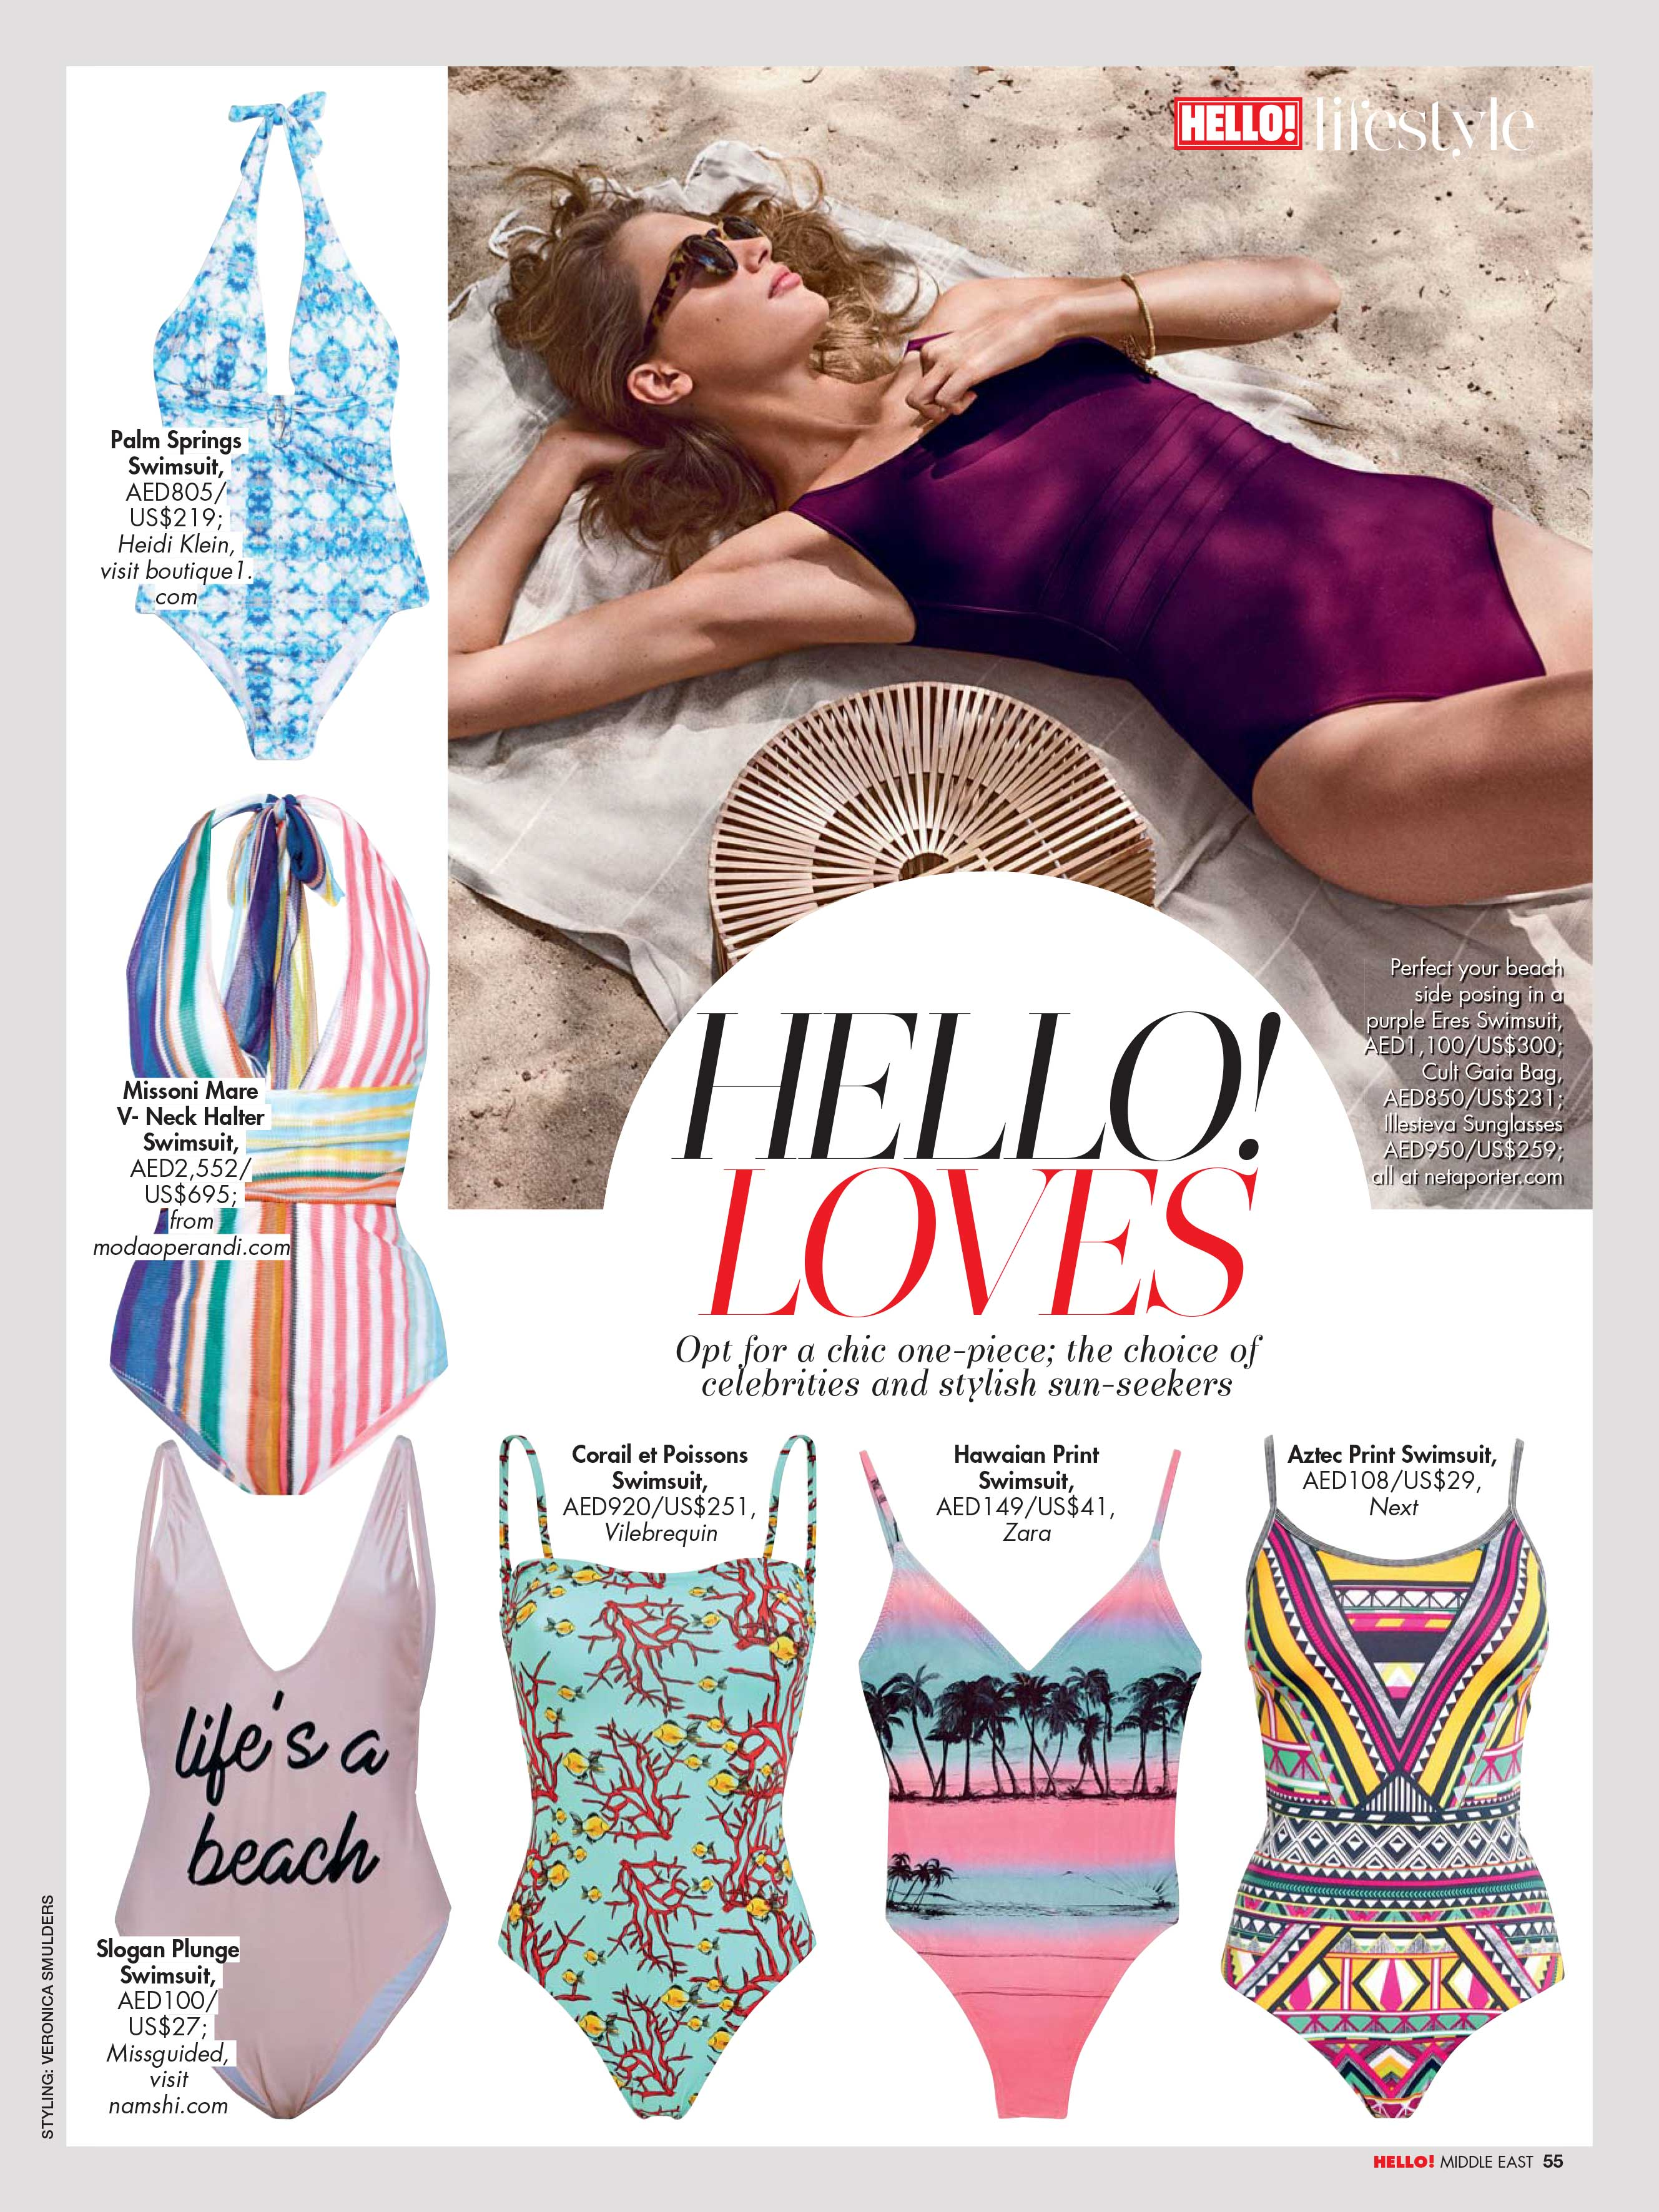 Fashion pages - Hello! Middle East